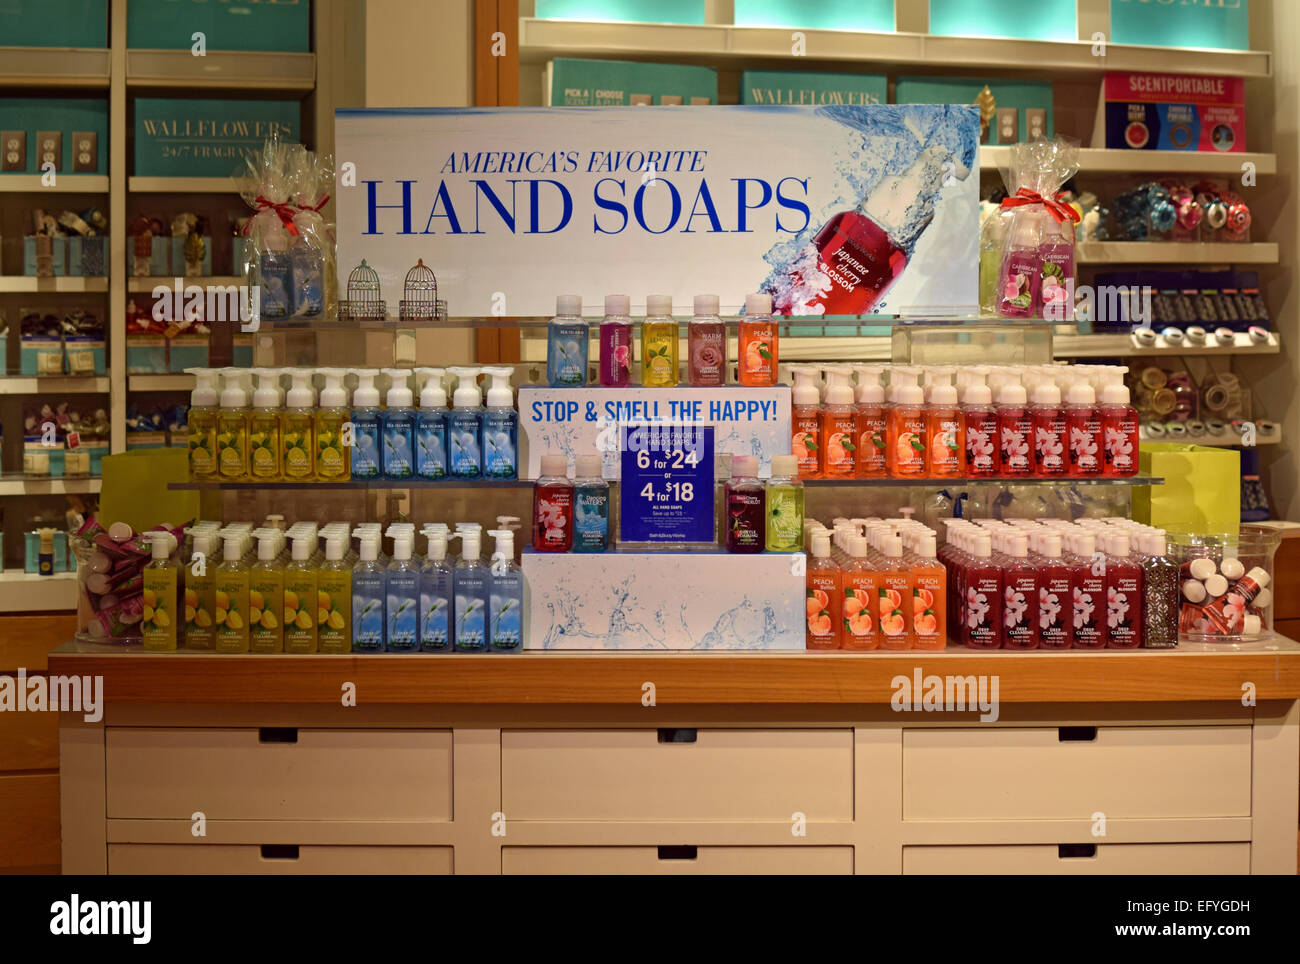 Scented soaps for sale at a Bath   Body Works store in the Roosevelt Field  Mall. Scented soaps for sale at a Bath   Body Works store in the